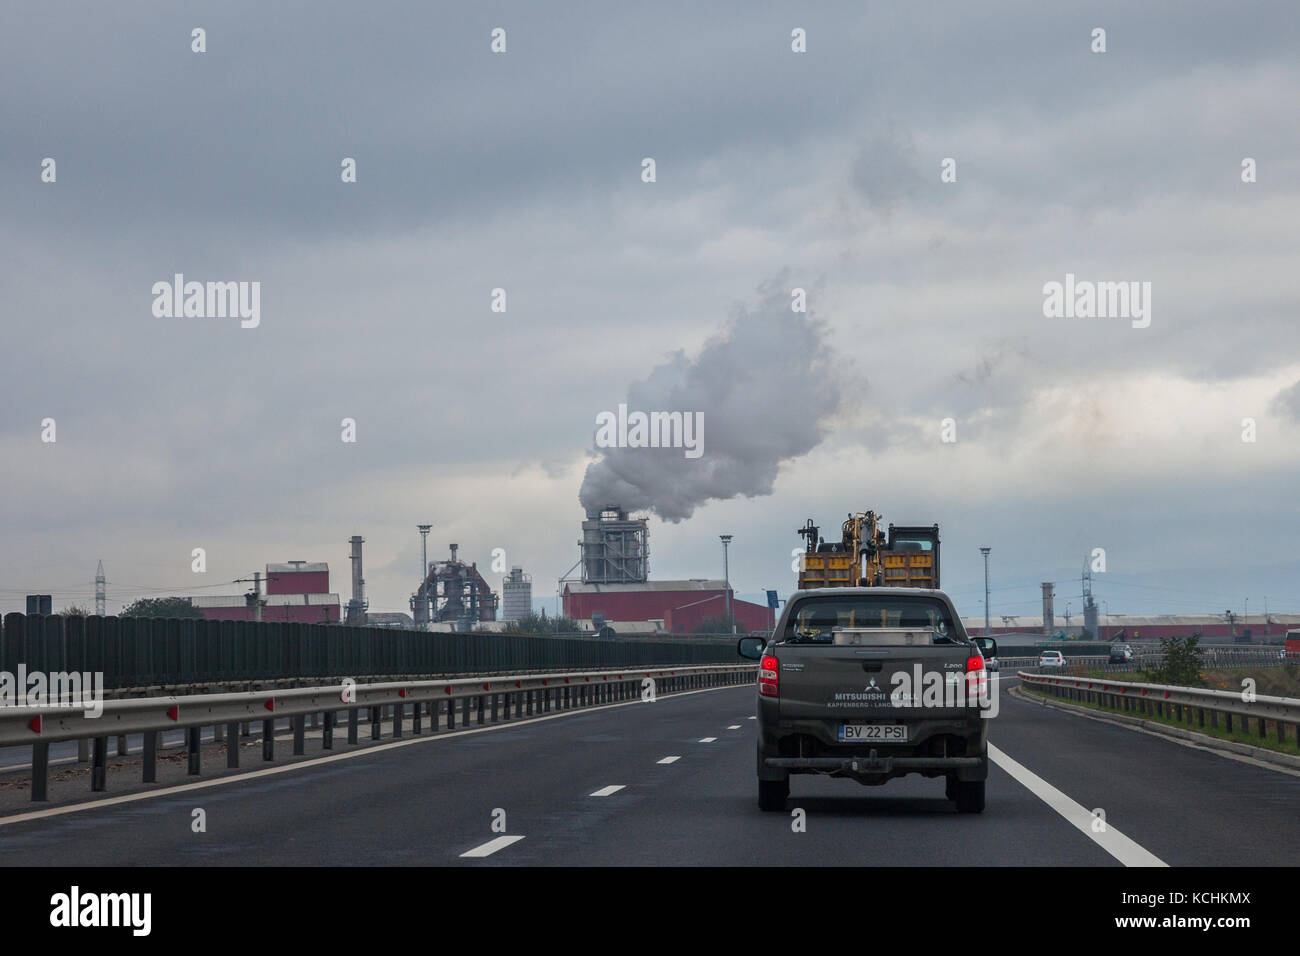 SEBES, ROMANIA - SEPTEMBER 23, 2017: Truck driving on a Romanian motorway near the road of Sebes, a highly polluting - Stock Image